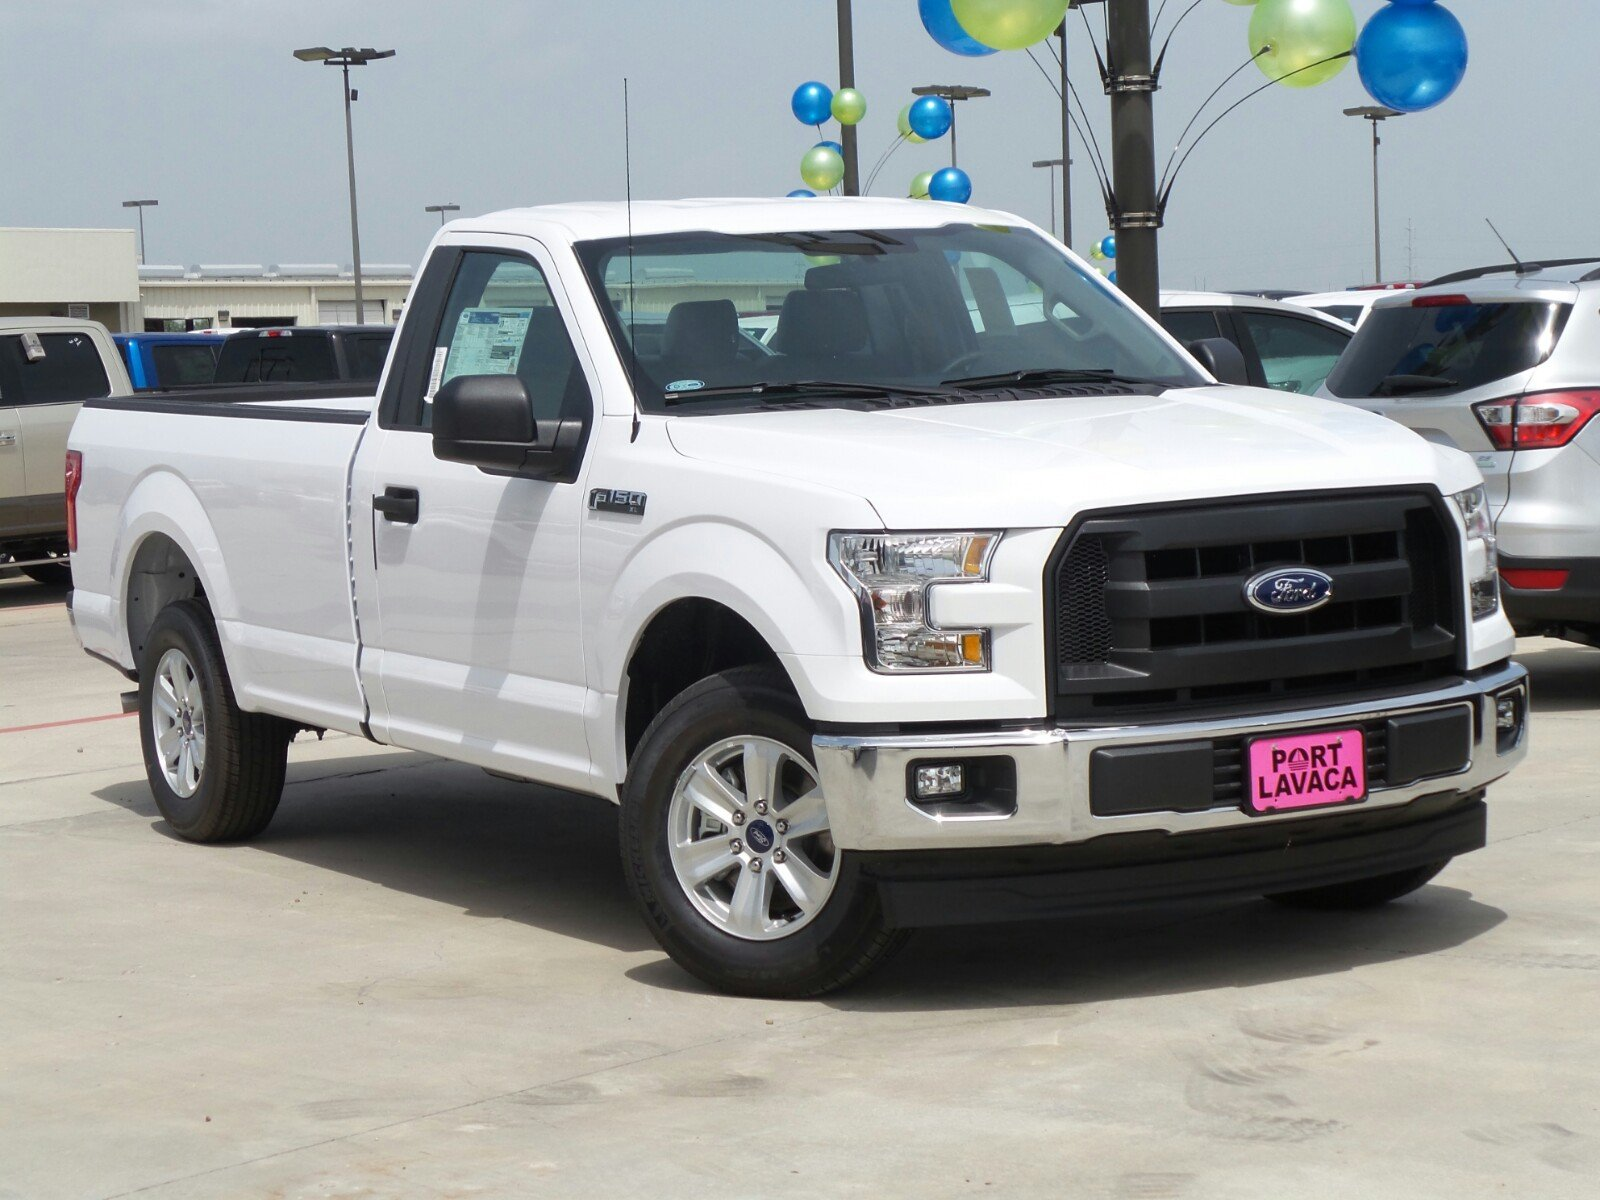 new 2017 ford f 150 xl regular cab pickup in port lavaca kd80640 port lavaca ford. Black Bedroom Furniture Sets. Home Design Ideas